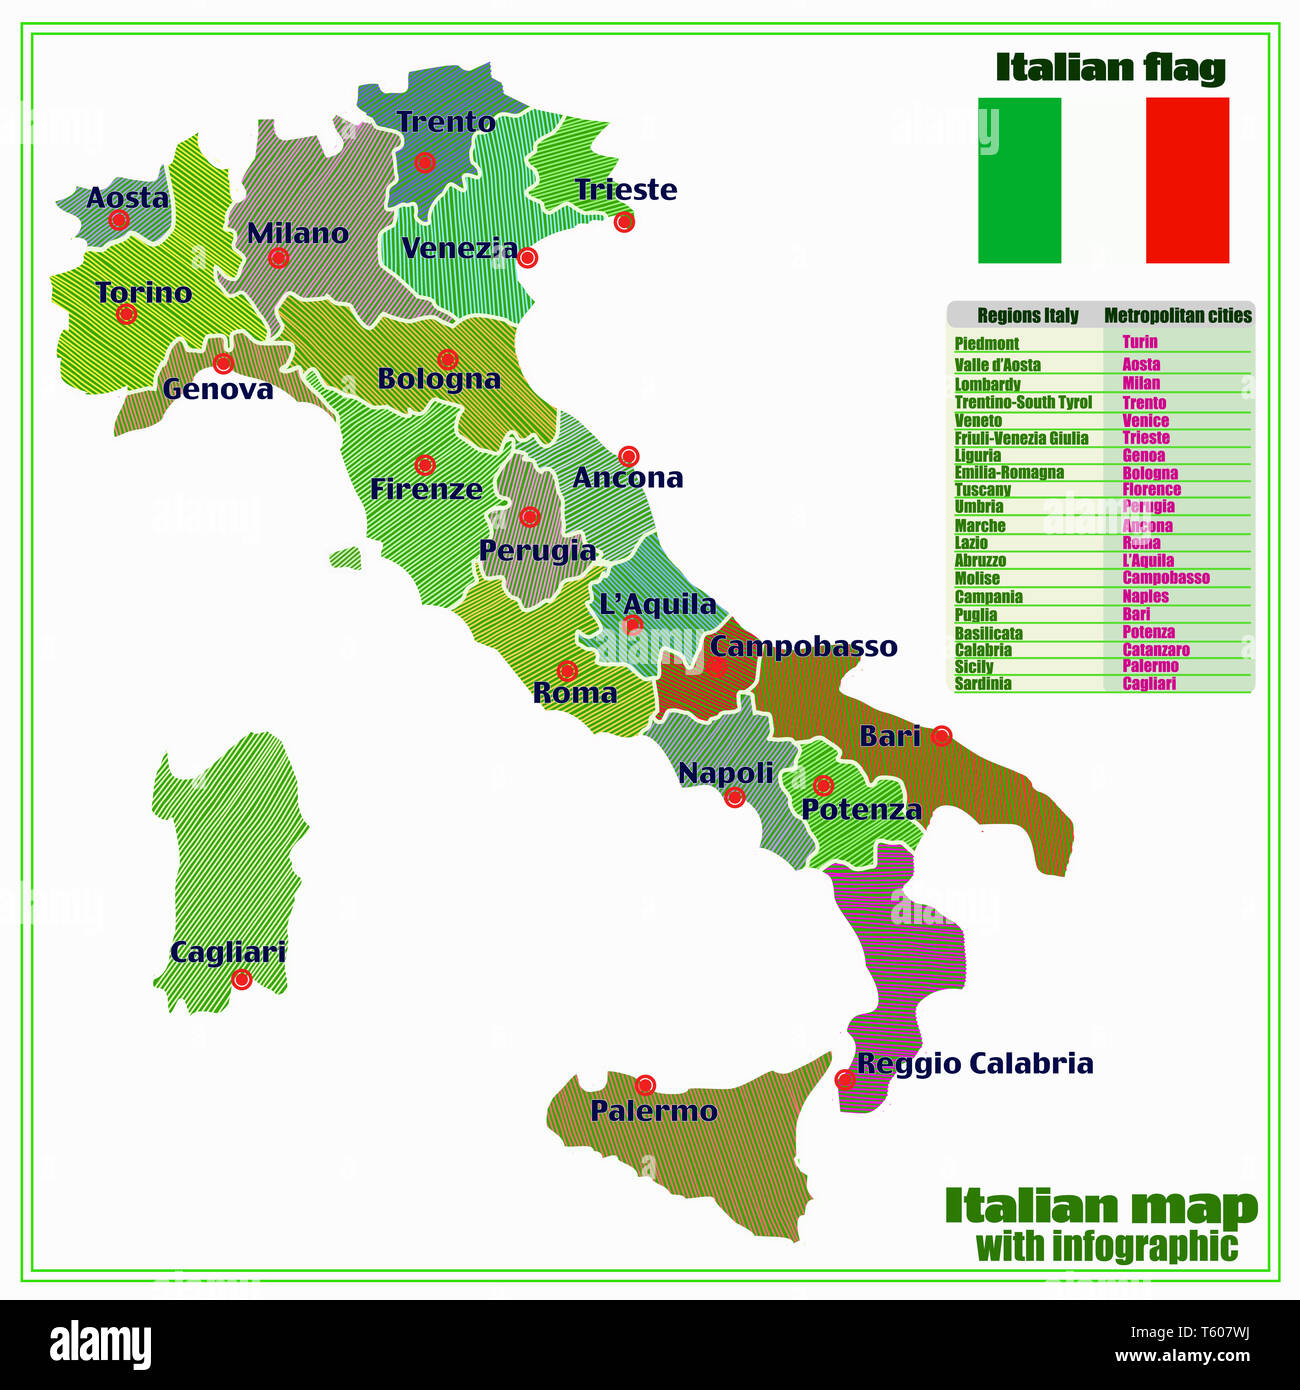 Map Of Italy With Main Cities.Map Of Italy With Infographic Colorful Illustration With Map Of